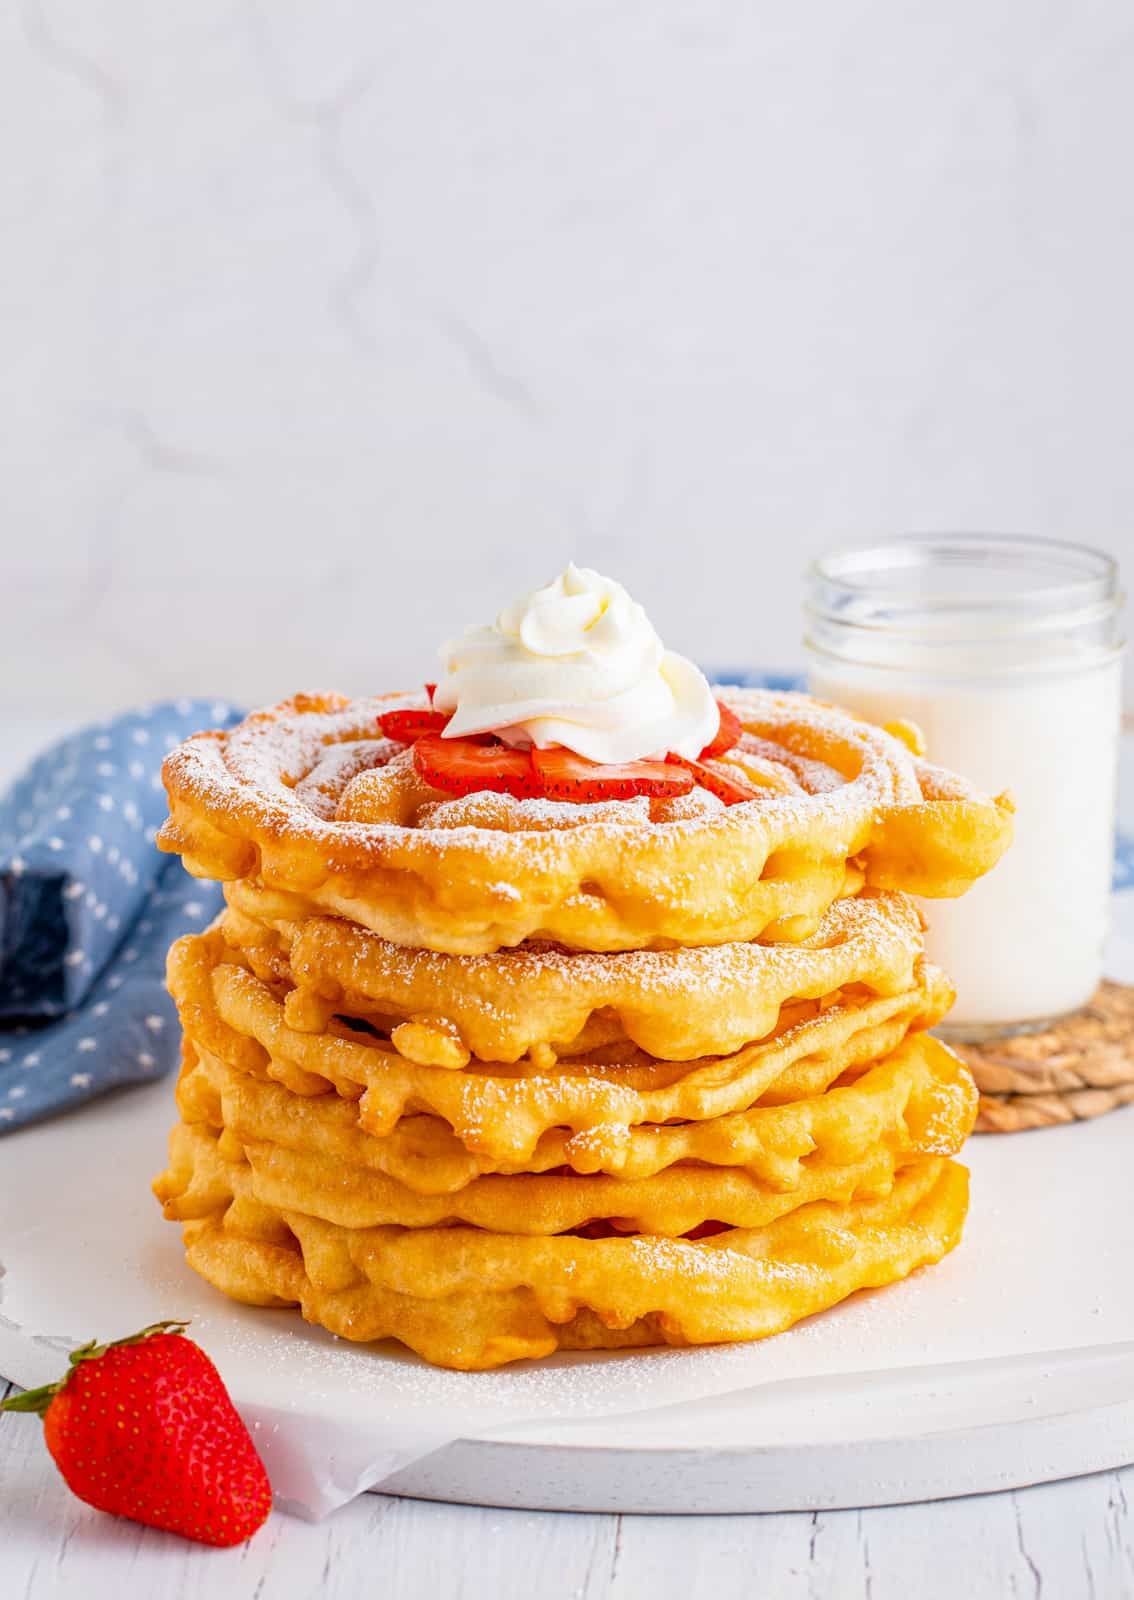 Stacked Funnel Cakes with powdered sugar, strawberries and whipped cream